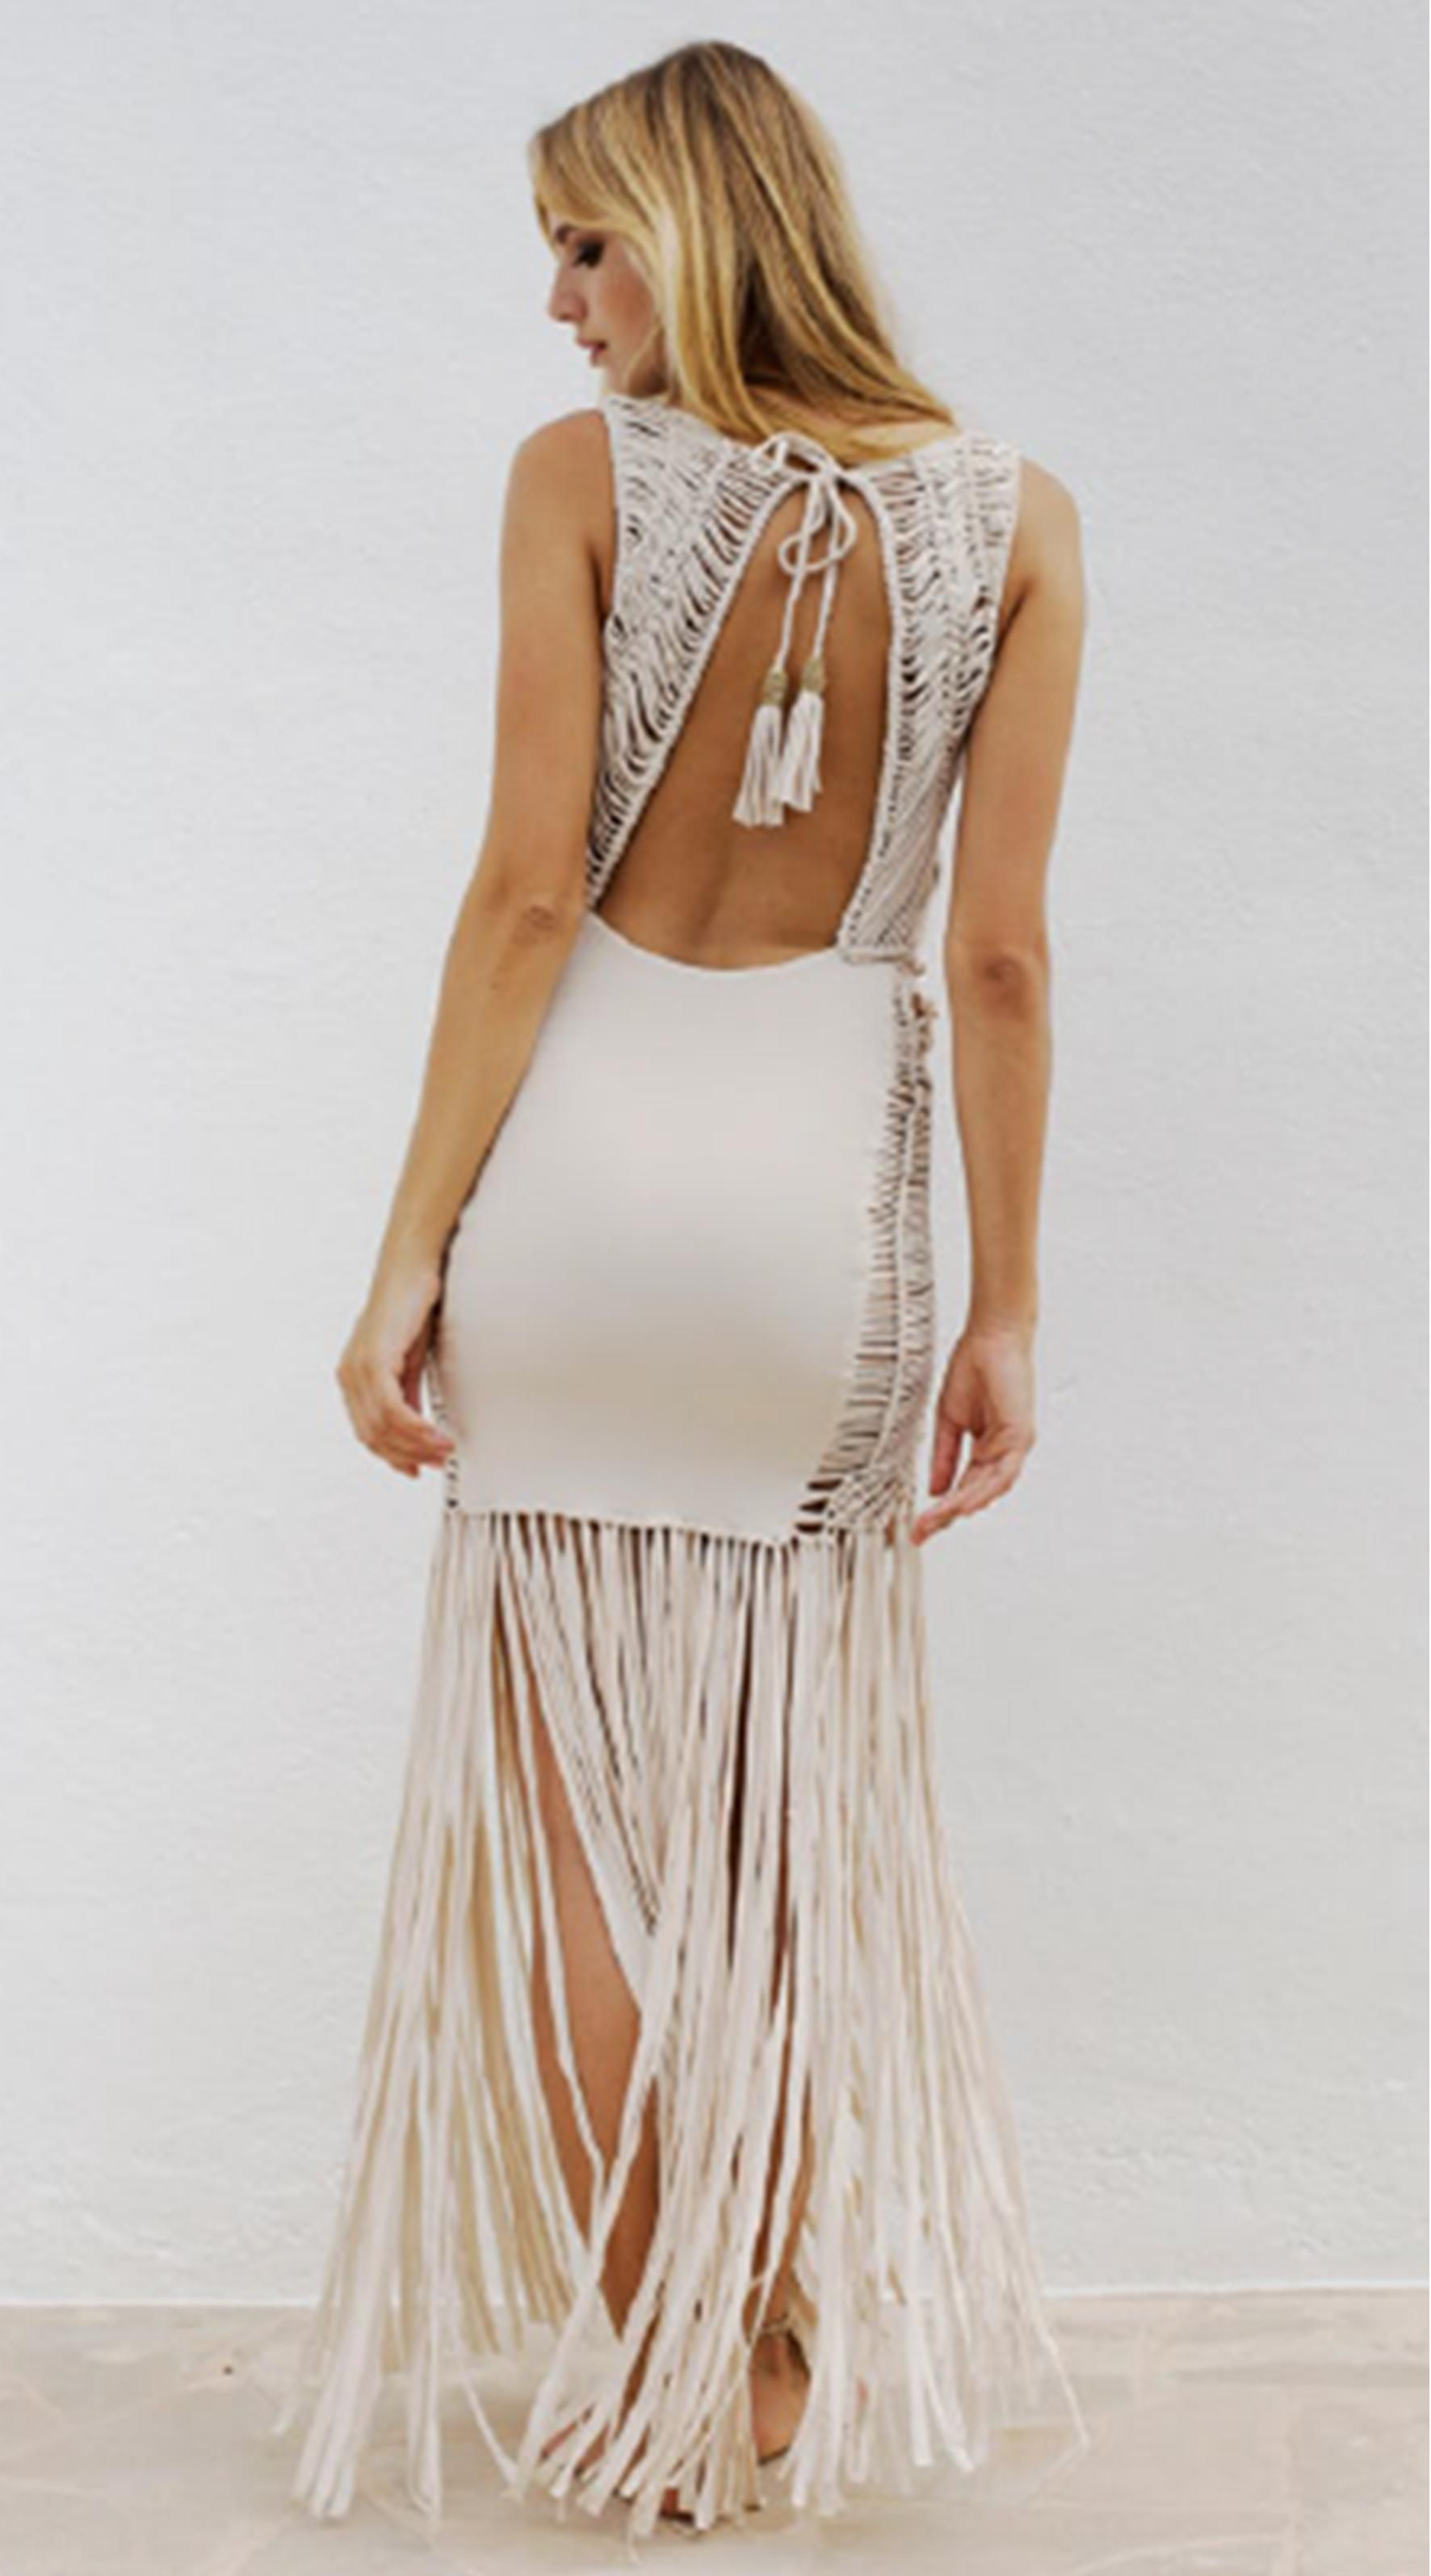 Hot tassels, fringe and marcrame make this Paloma Dress by Flook 100% show-stopping stunning! . . . . #liberalstyle #daisies #flowers #indooroopillyshopping #lvl3 #bohemian  #clothesshop #ootdinspo #love #instagood #cute #photooftheday #picoftheday #beach #beautiful #instadaily #summer #fashion #sun #style #smile #beauty #ootd #me #look #instafashion #fashionable #fashionstyle #styleyourlife #onlineshopping #shopping #shoponline #boho #outfit  #instastyle #bohostyle